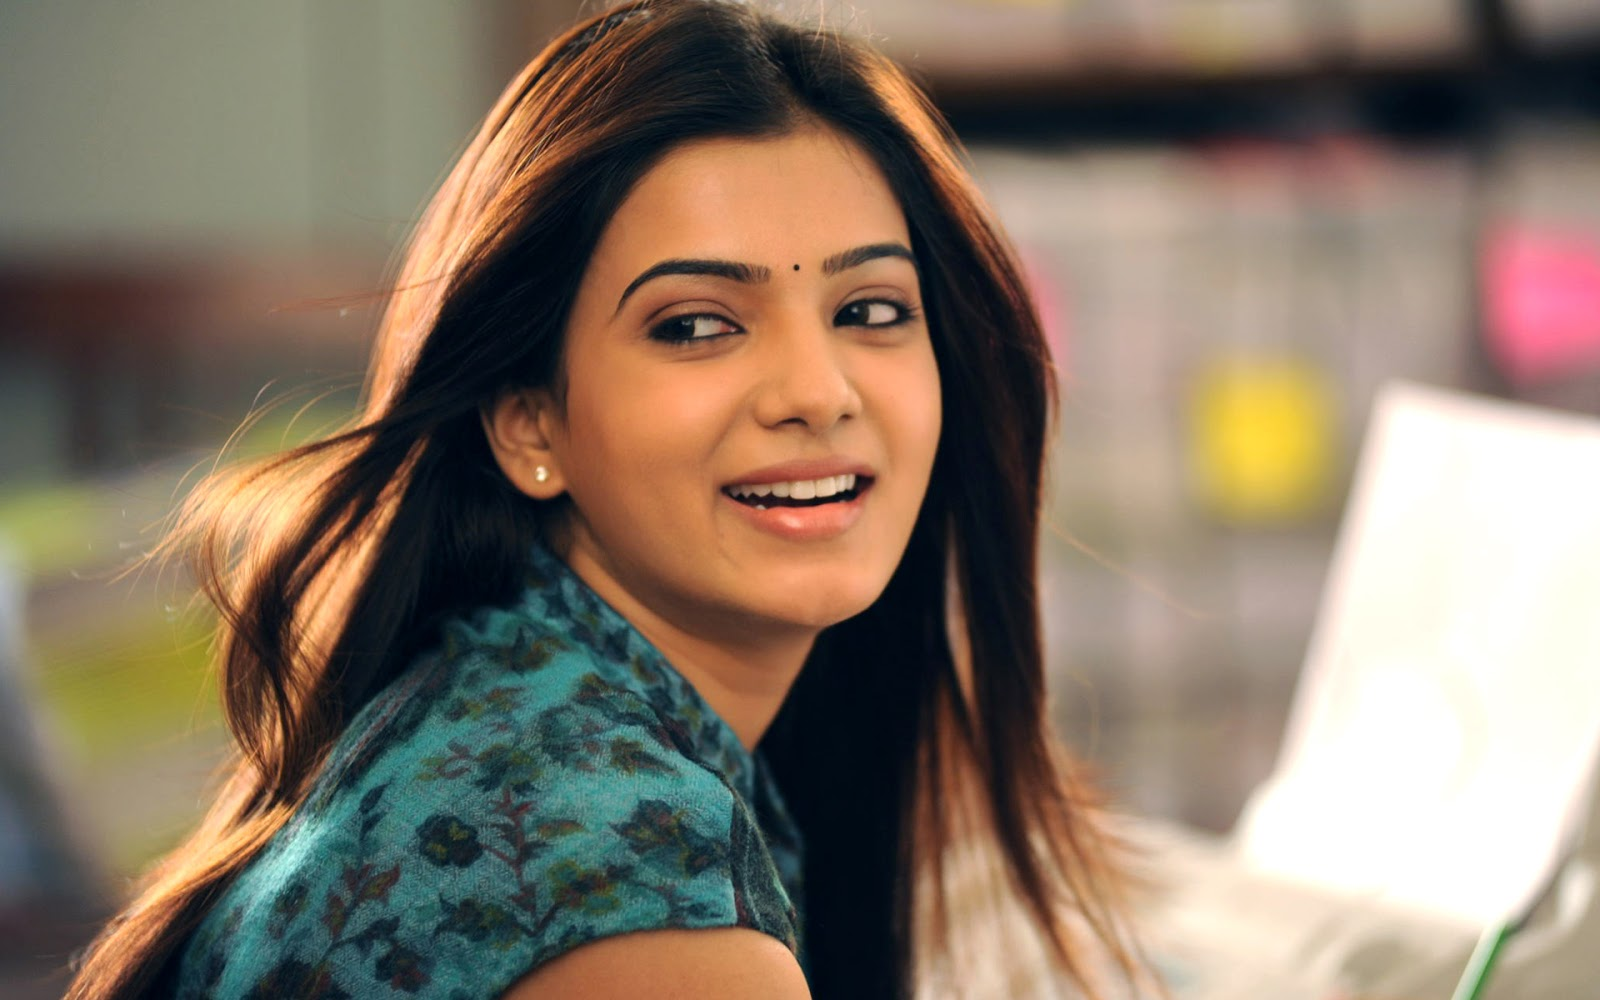 Samantha photos old collection 2 | Picture 5